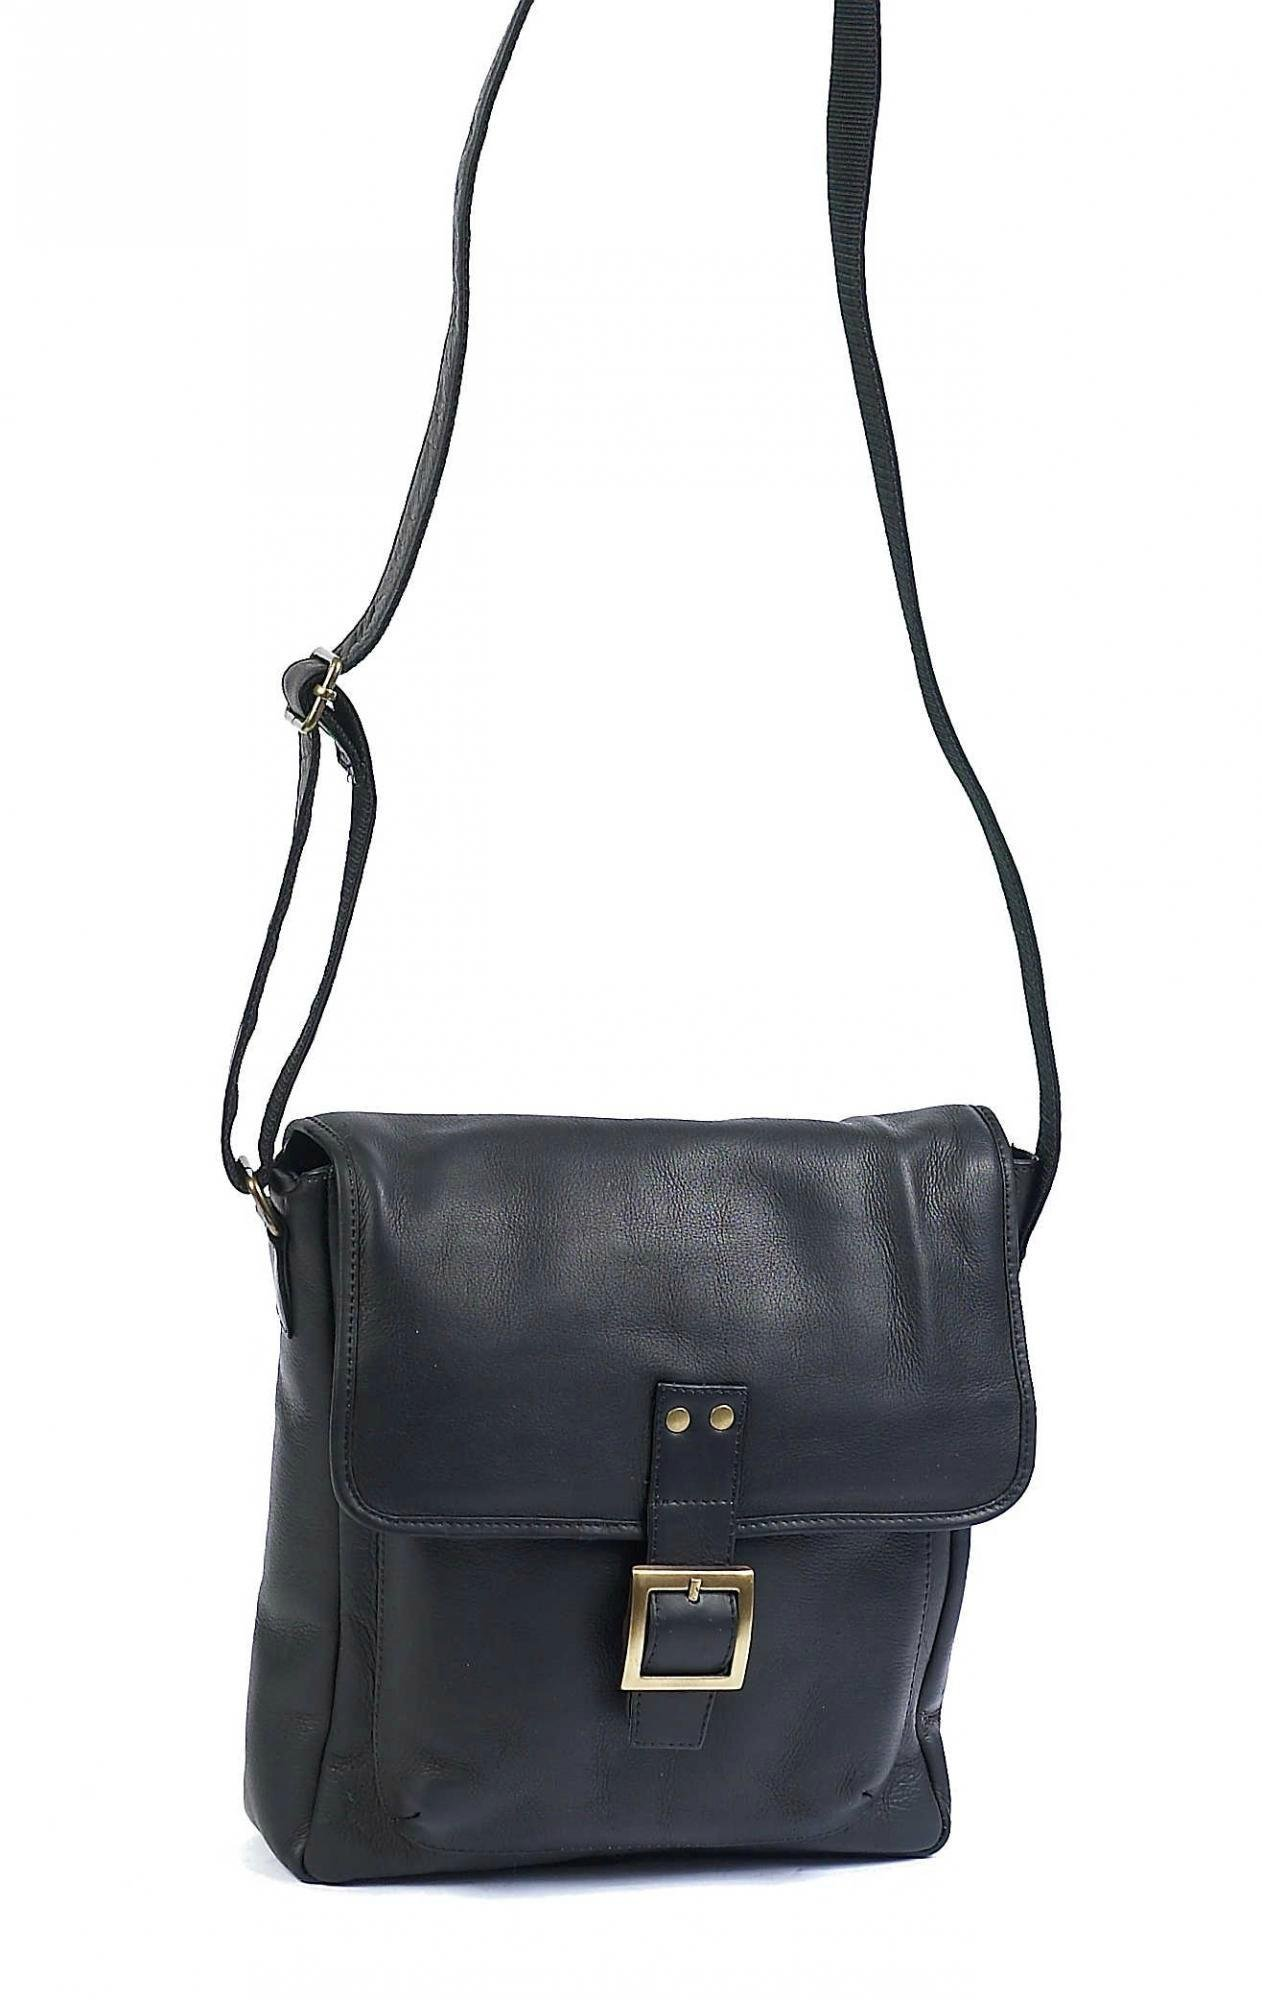 Claire Chase Versailles Man Bag, Black, One Size